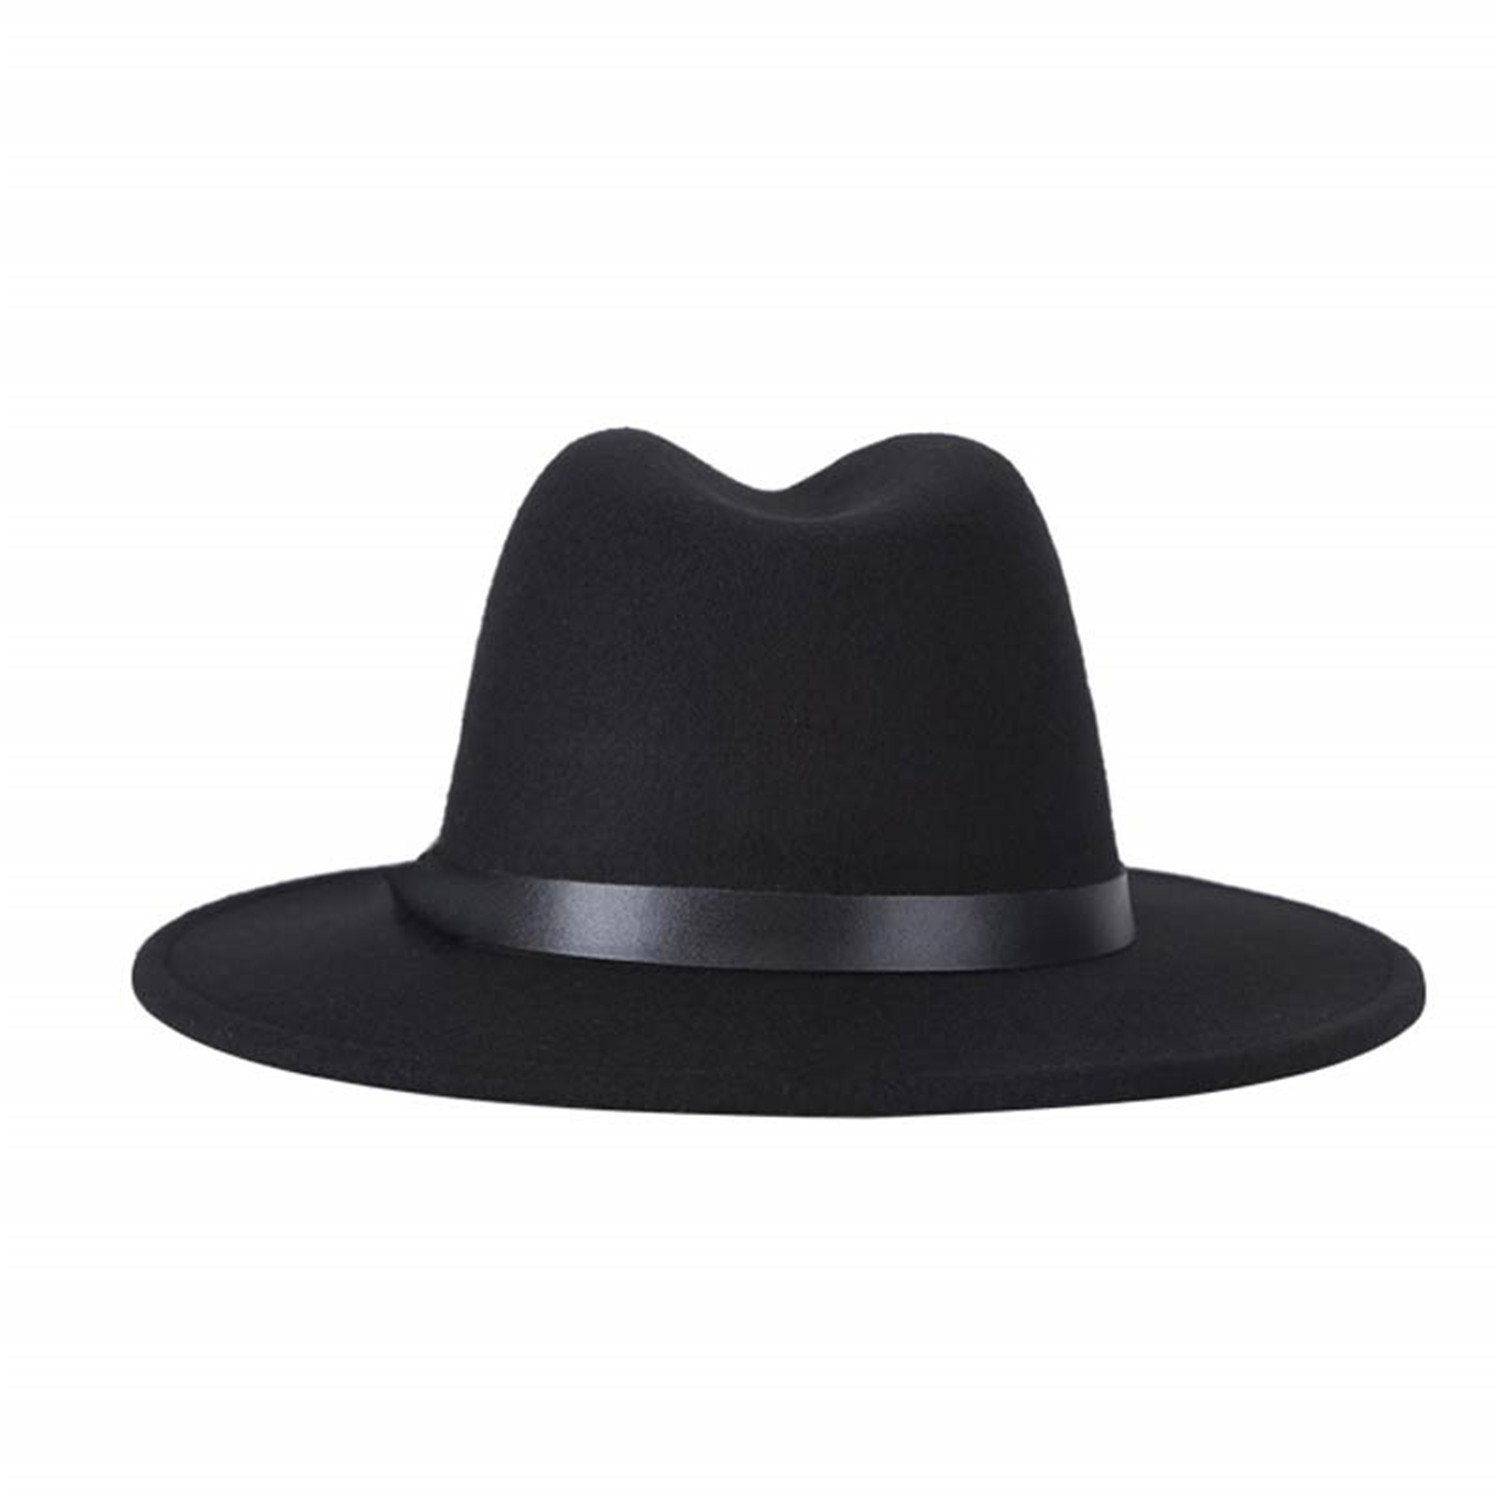 Zesoma Womens Fedora Hat for Laday Wide Brim Jazz Church Cap Fedora Top Hat